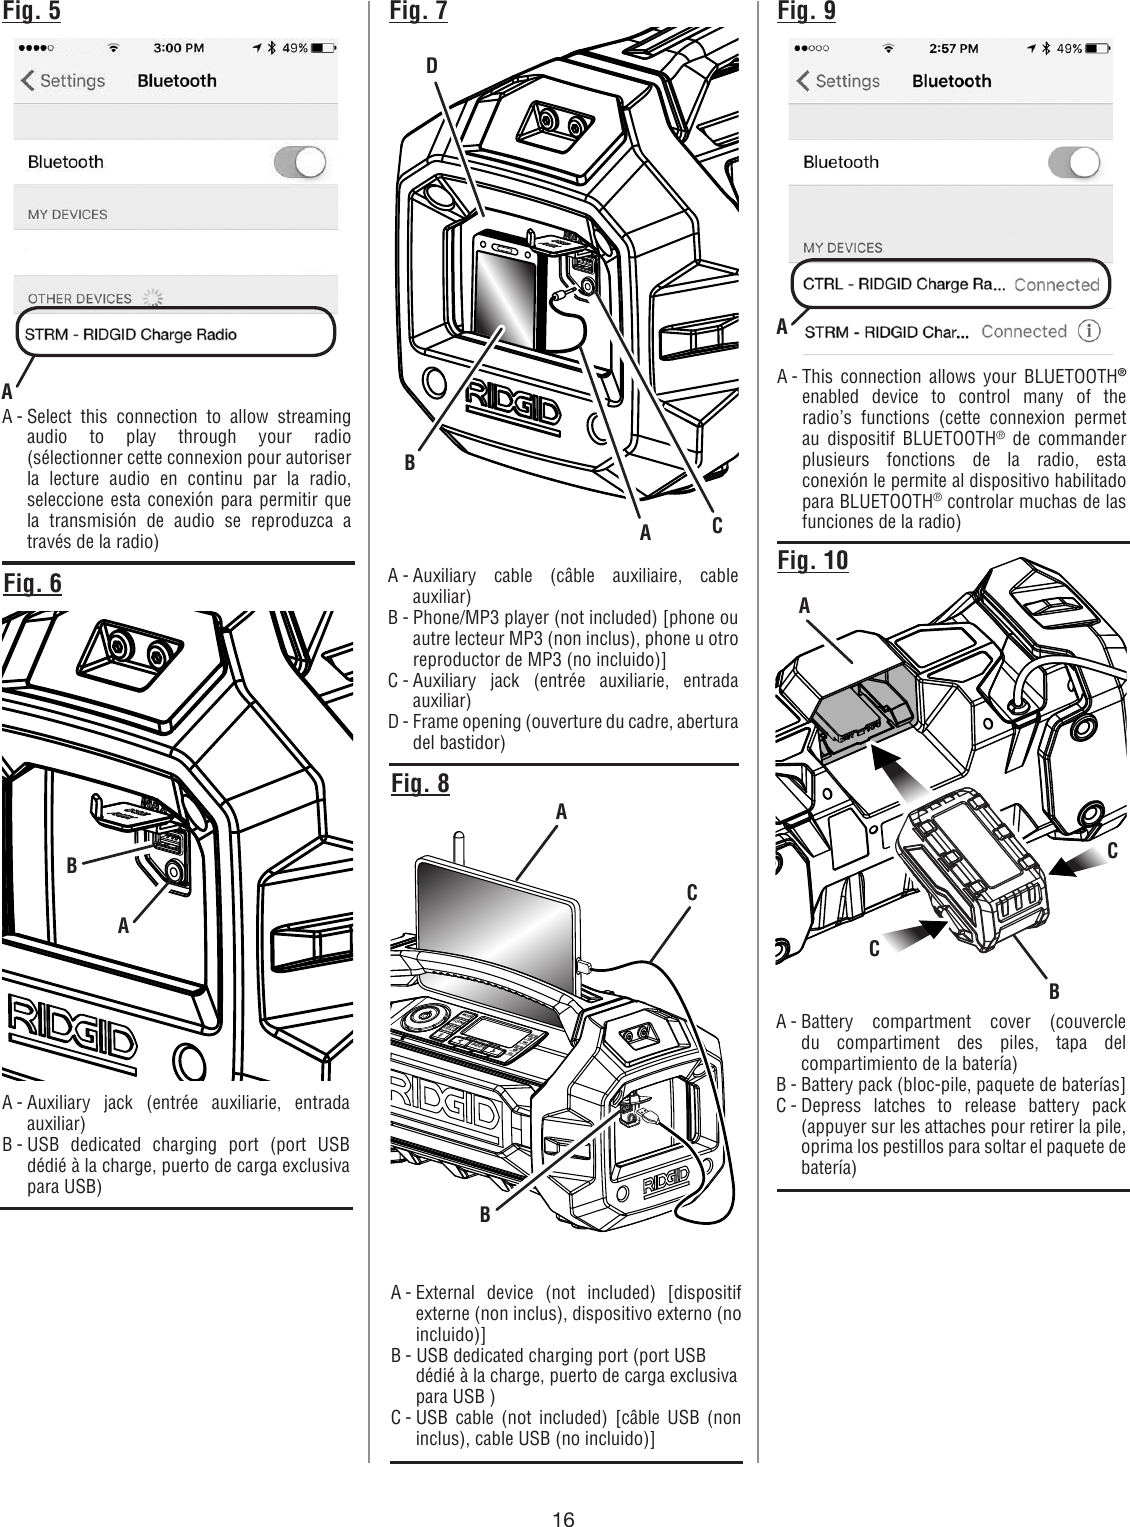 mb-3700 charger users manual